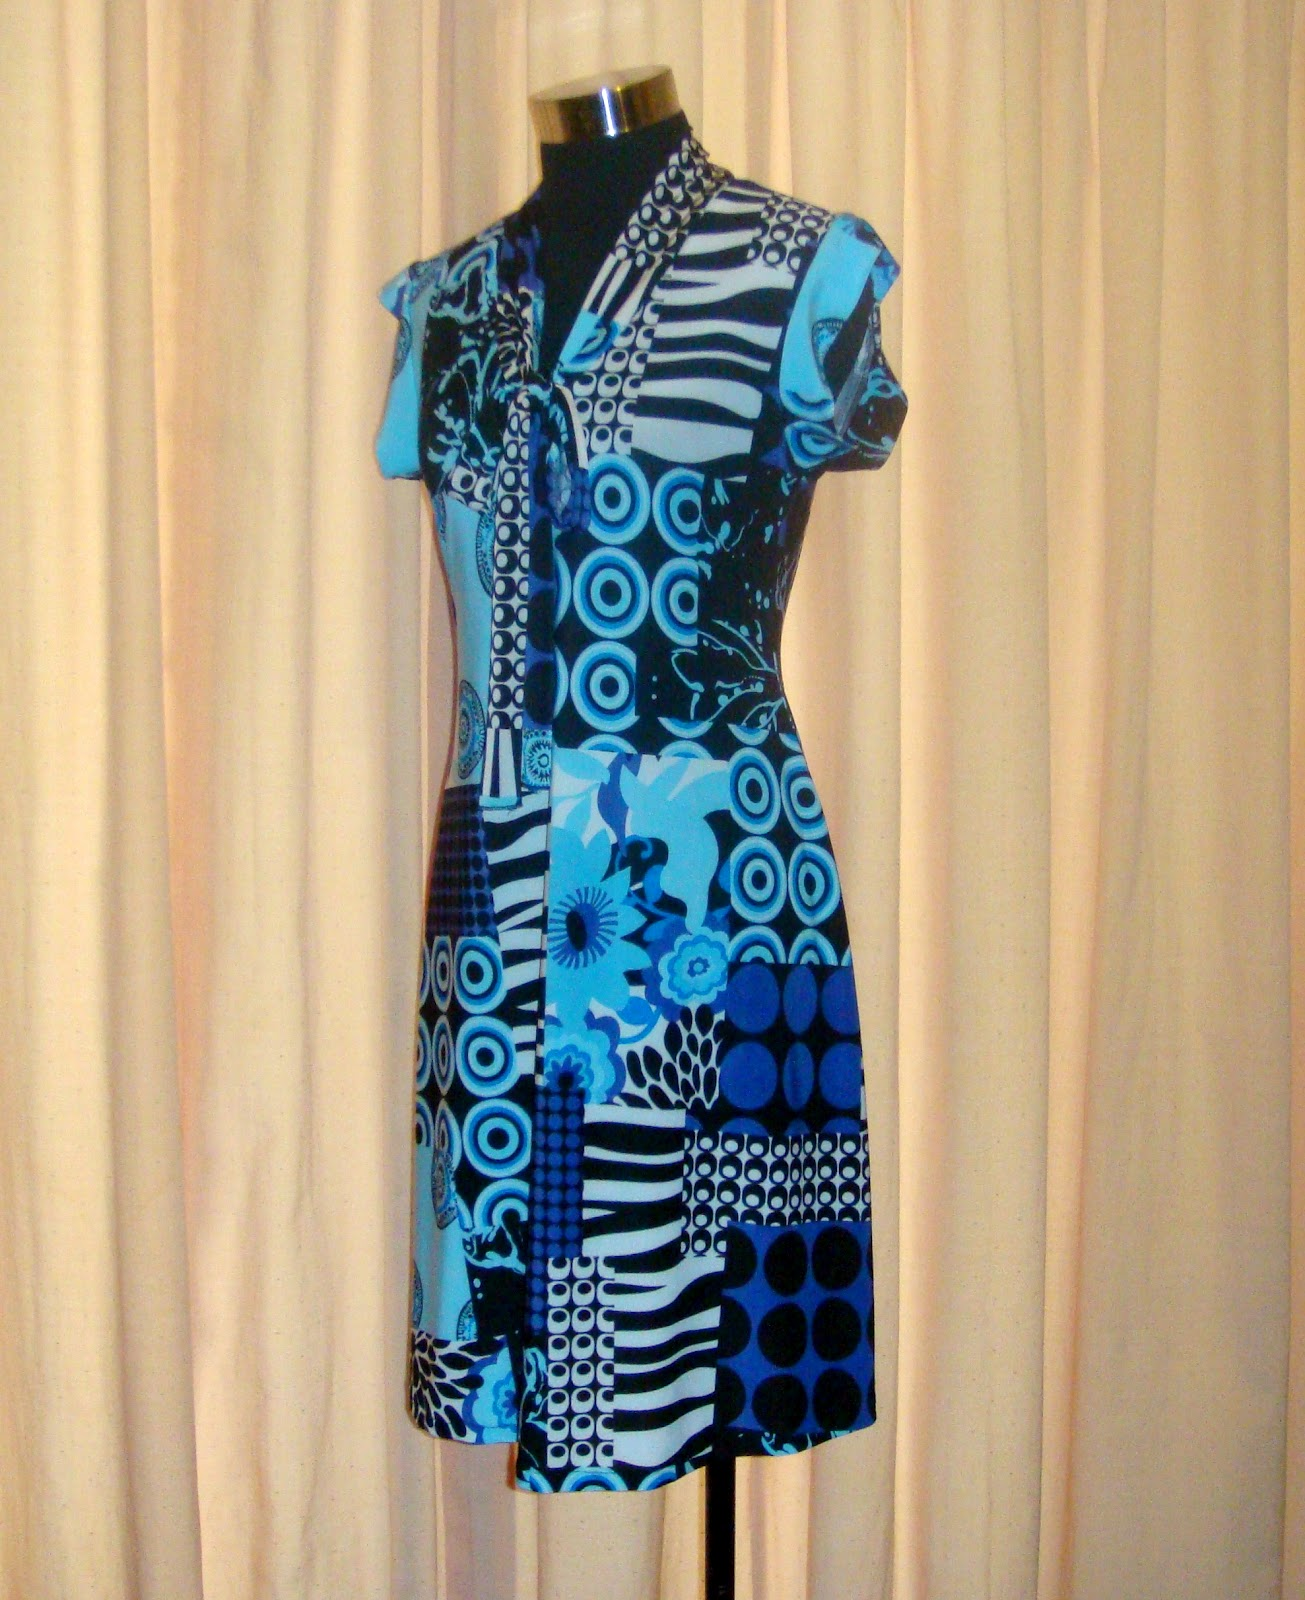 http://velvetribbonsew.blogspot.com/2012/09/bow-tie-dress-in-stretch-jersey_19.html